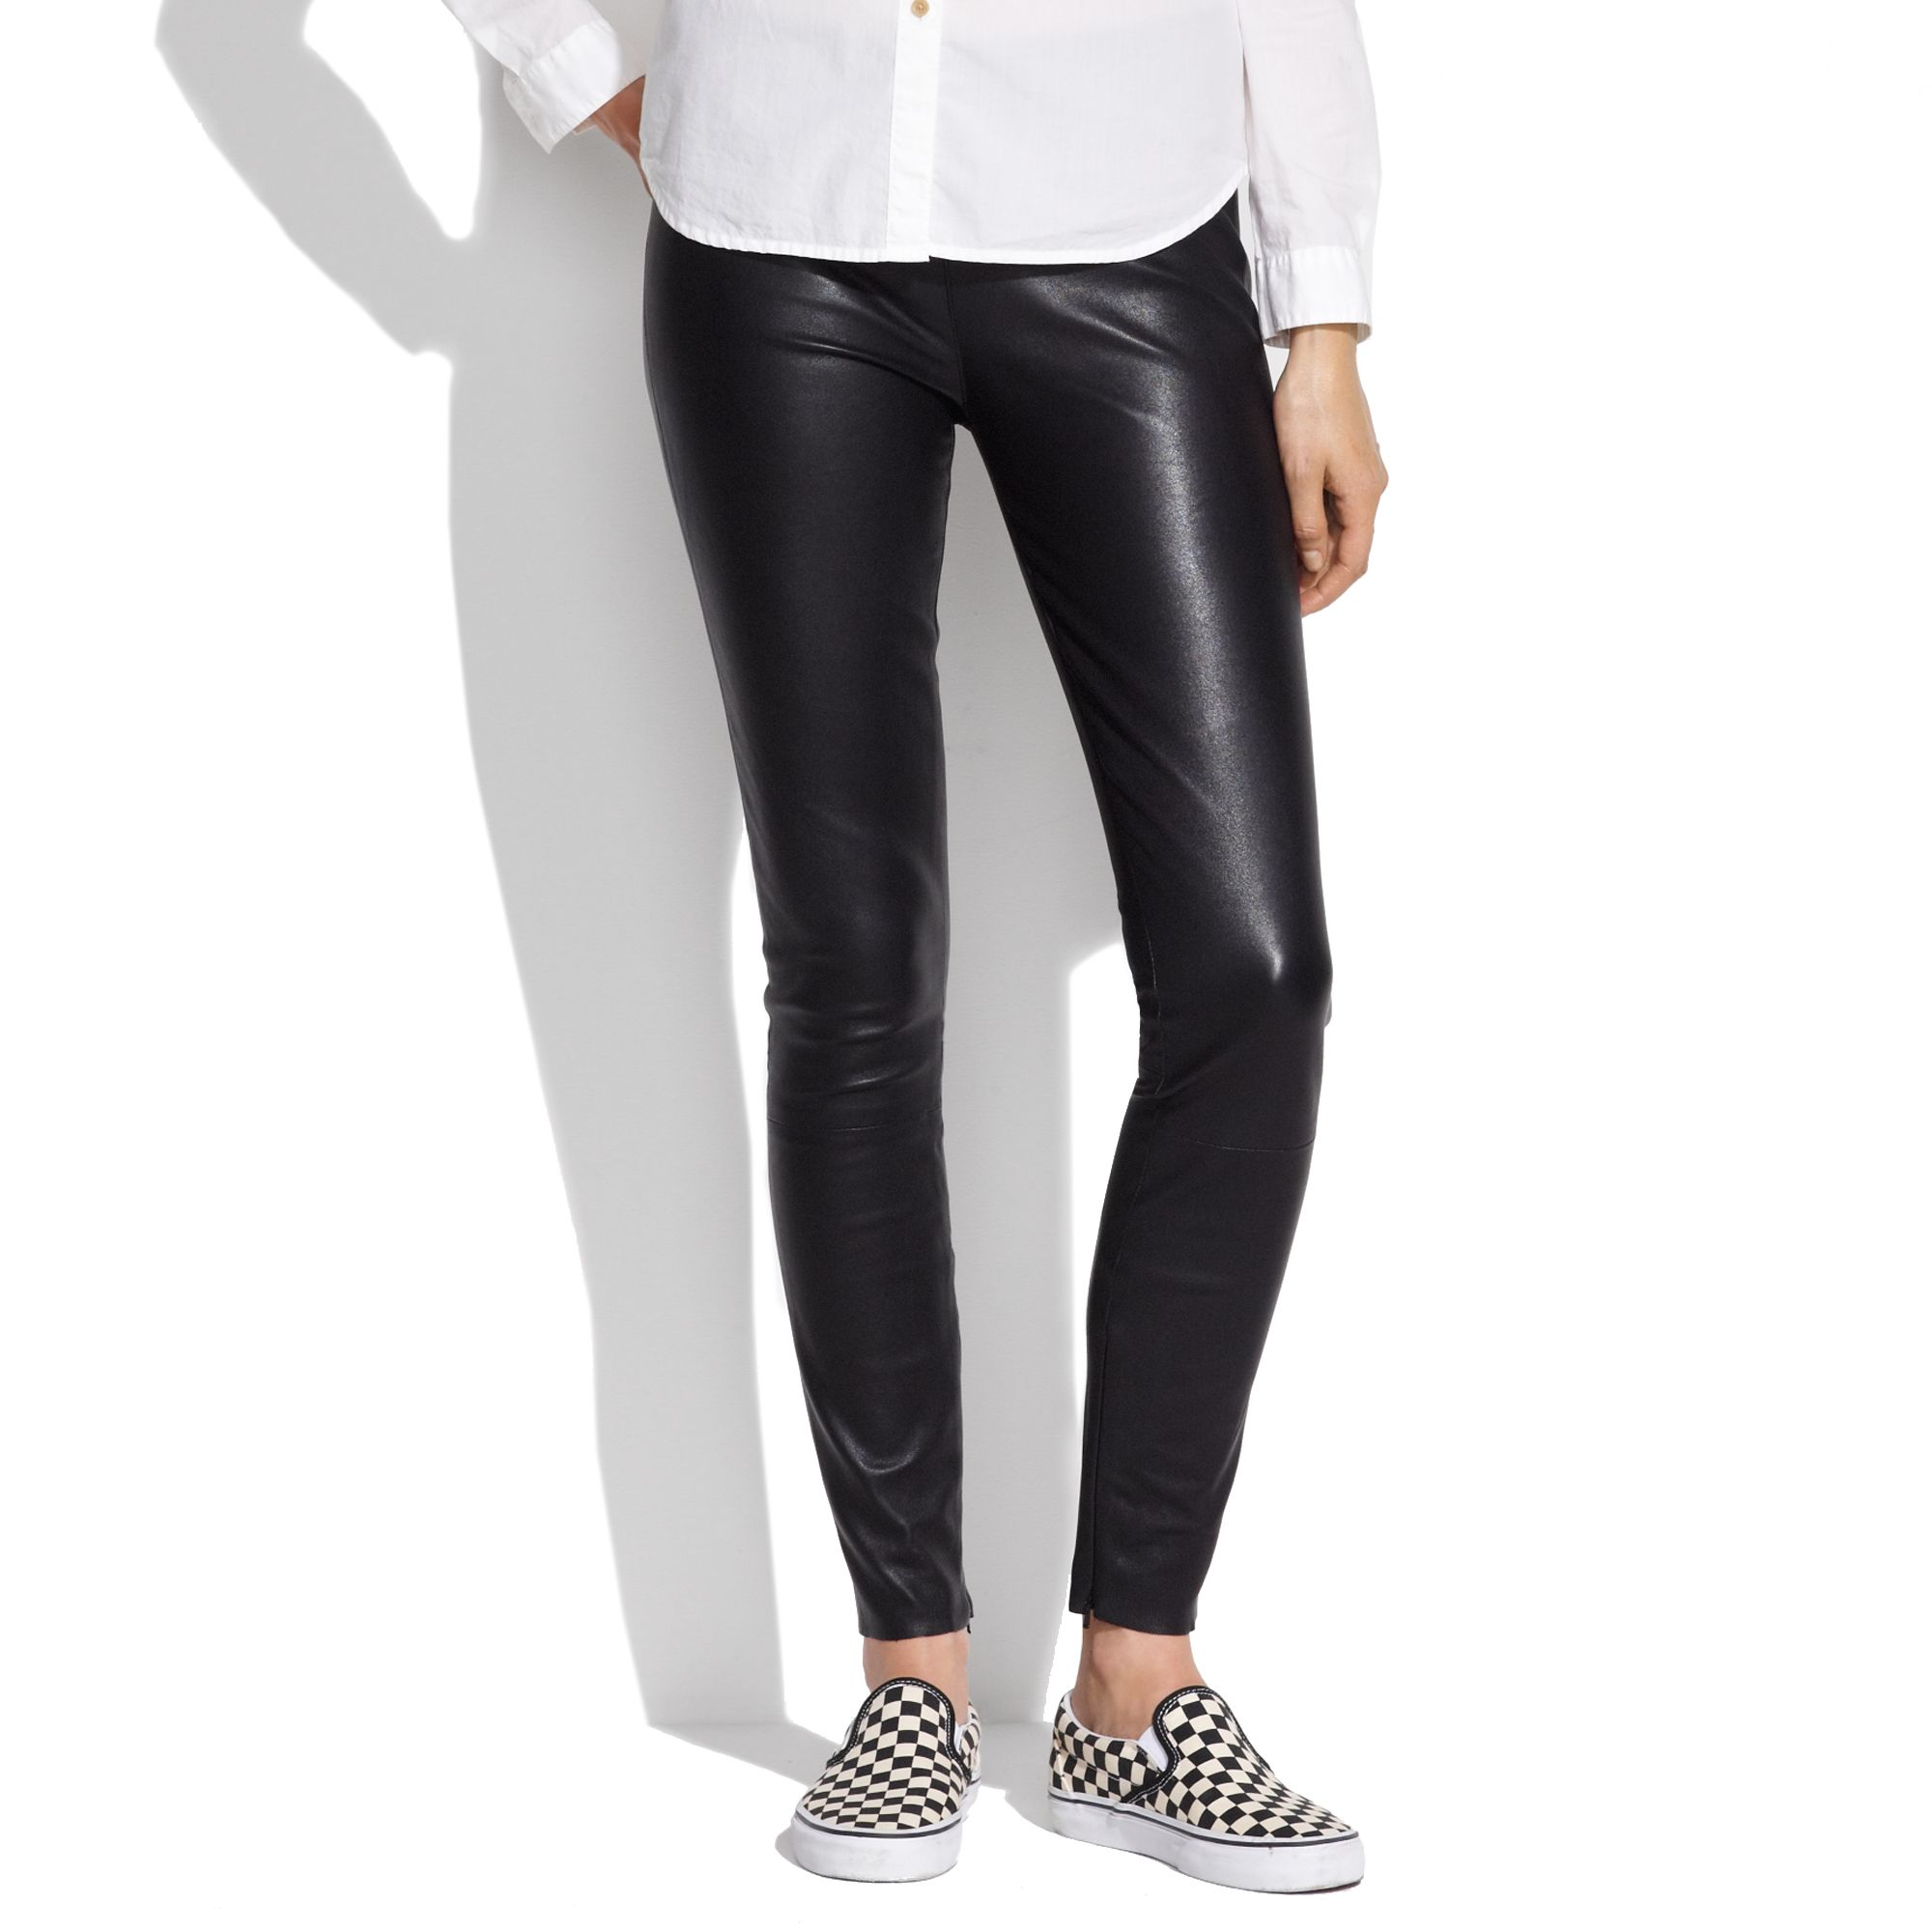 Lyst - Madewell Leather Leggings In Black-8397